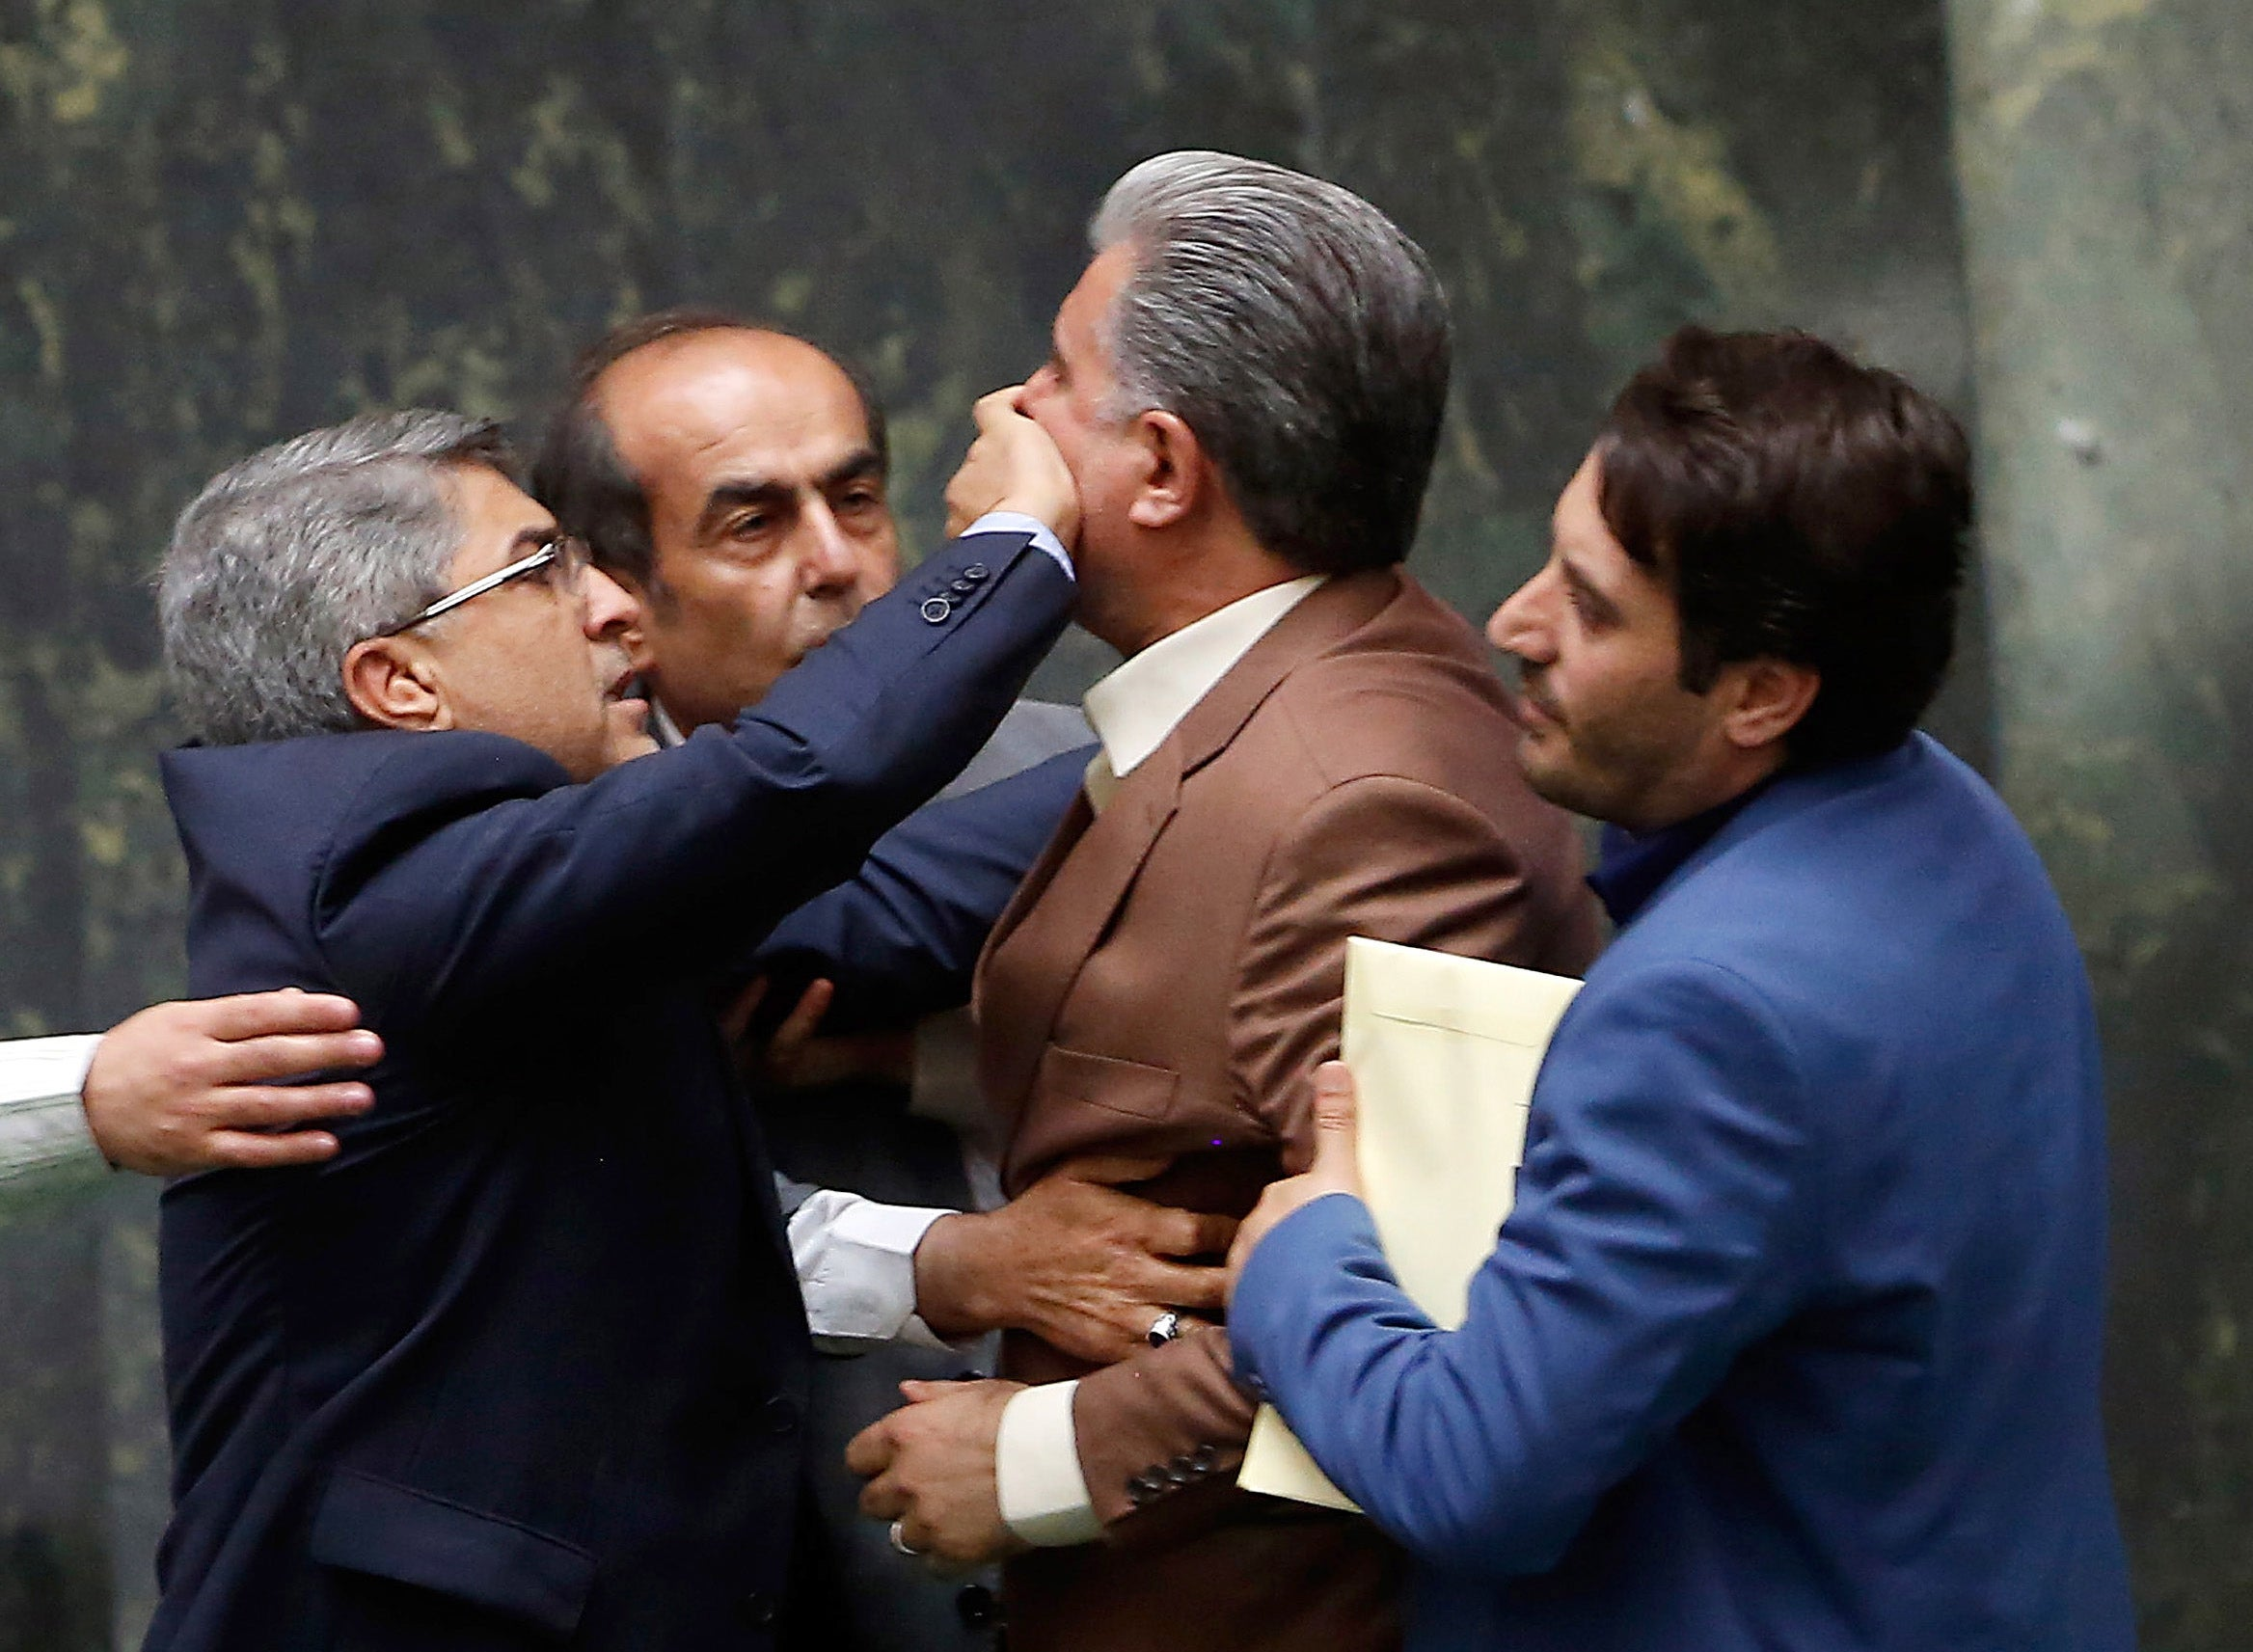 Brawl Breaks Out In Iranian Parliament After Economic And Finance